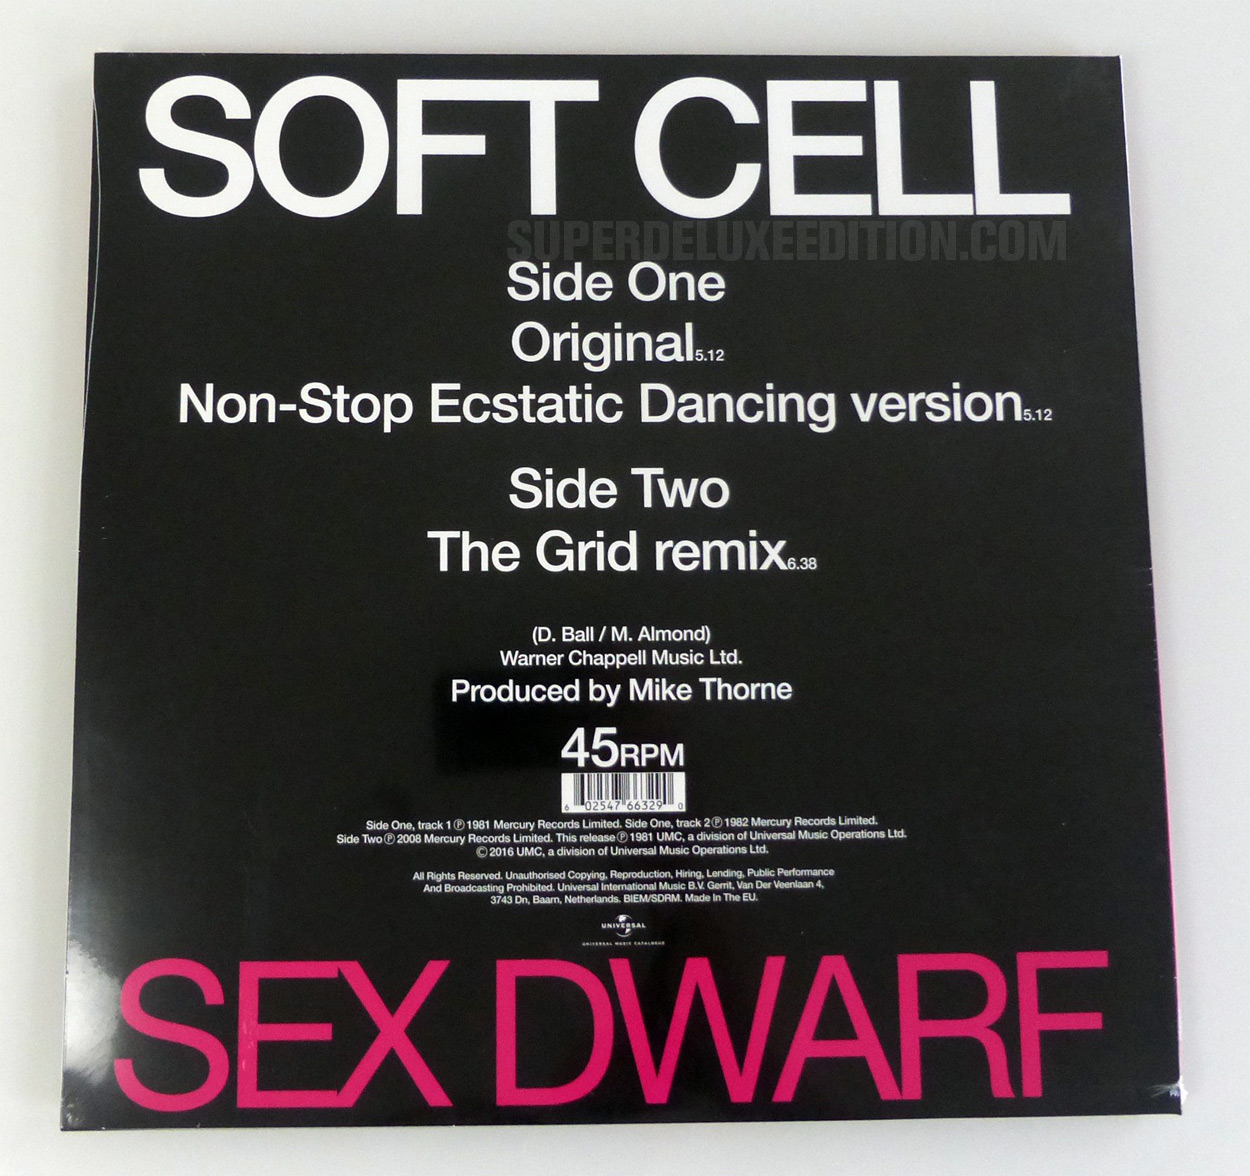 Soft Cell: Sex Dwarf pink vinyl 12-inch